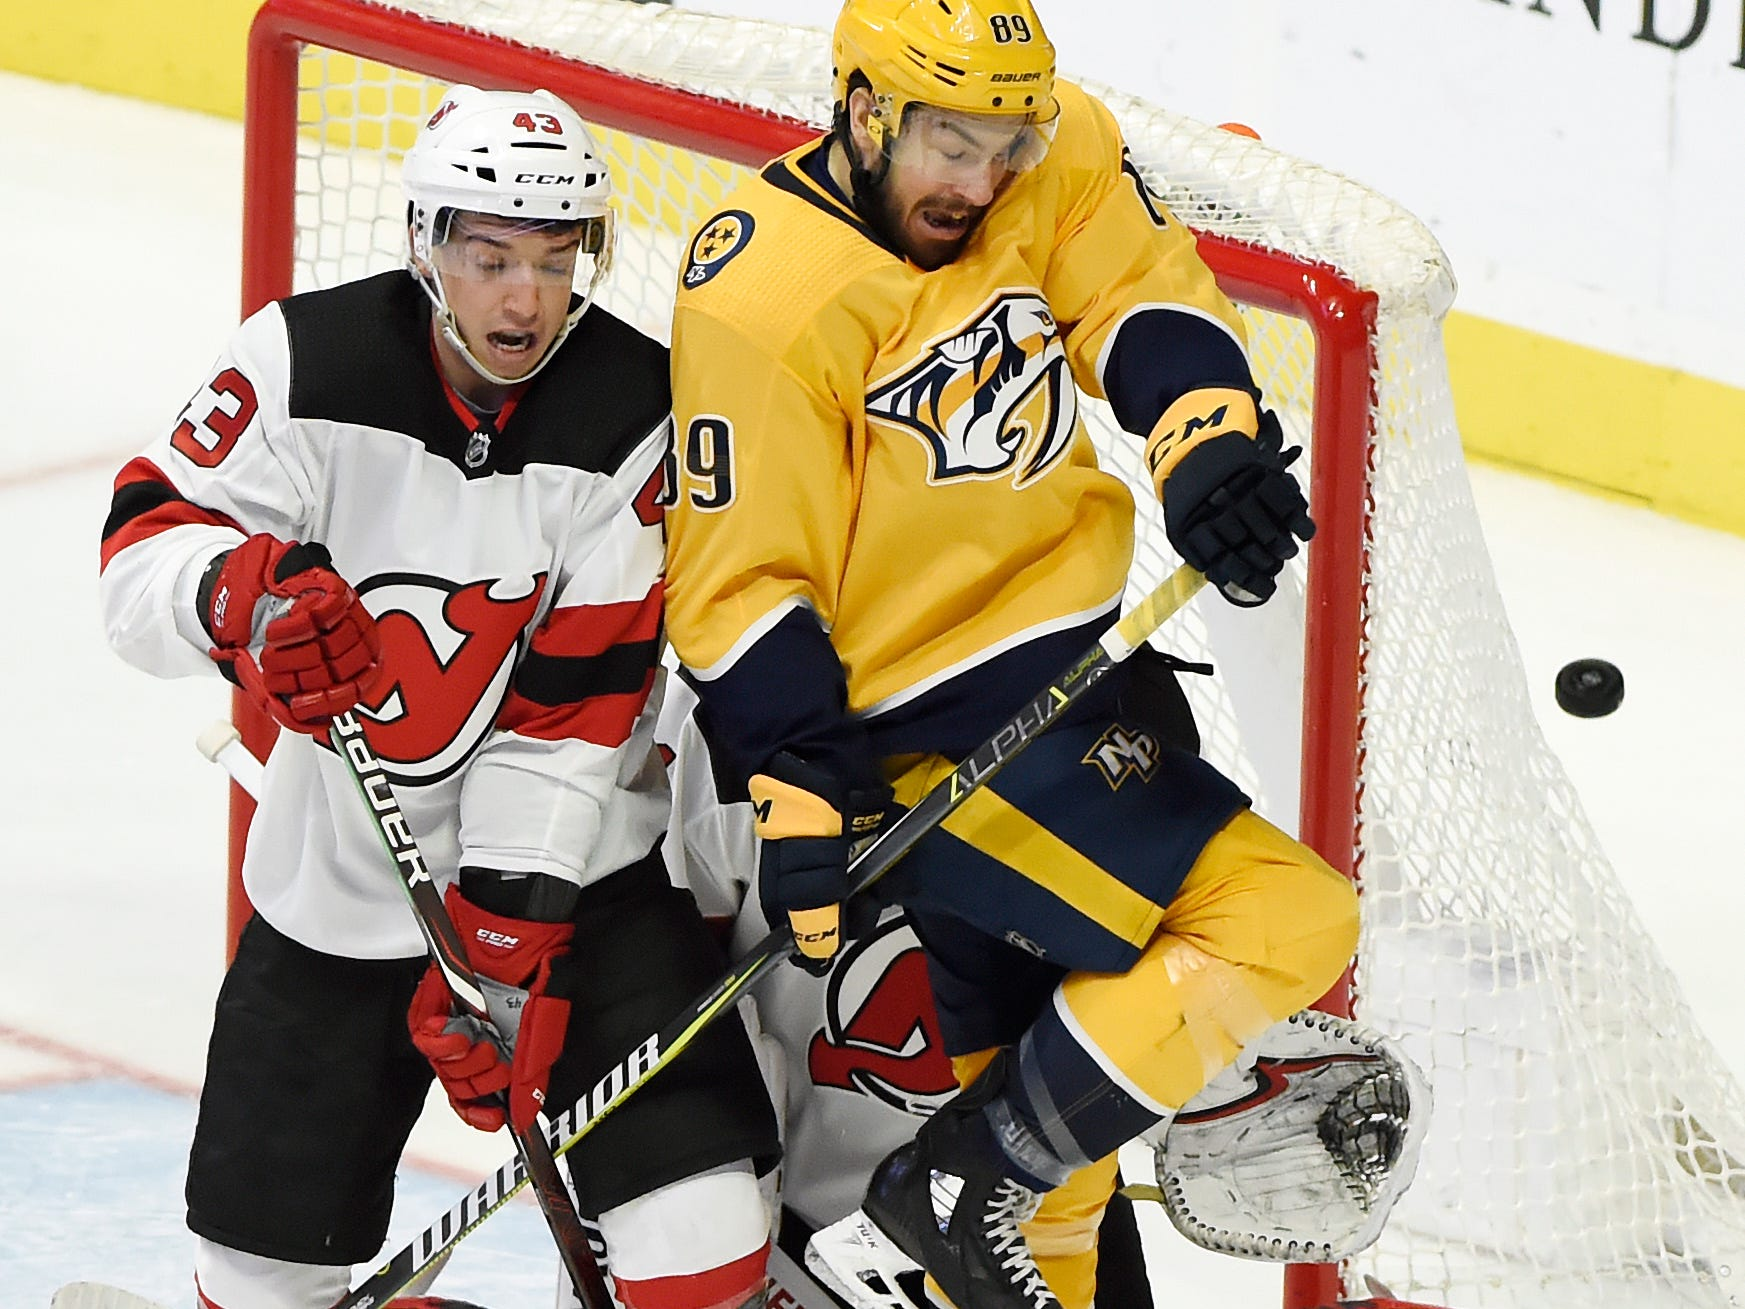 New Jersey Devils left wing Brett Seney (43) and Nashville Predators center Frederick Gaudreau (89) try to move out of the way of a shot during the third of an NHL hockey game Saturday, Dec. 15, 2018, in Nashville, Tenn. The Predators won 2-1 in an shootout.